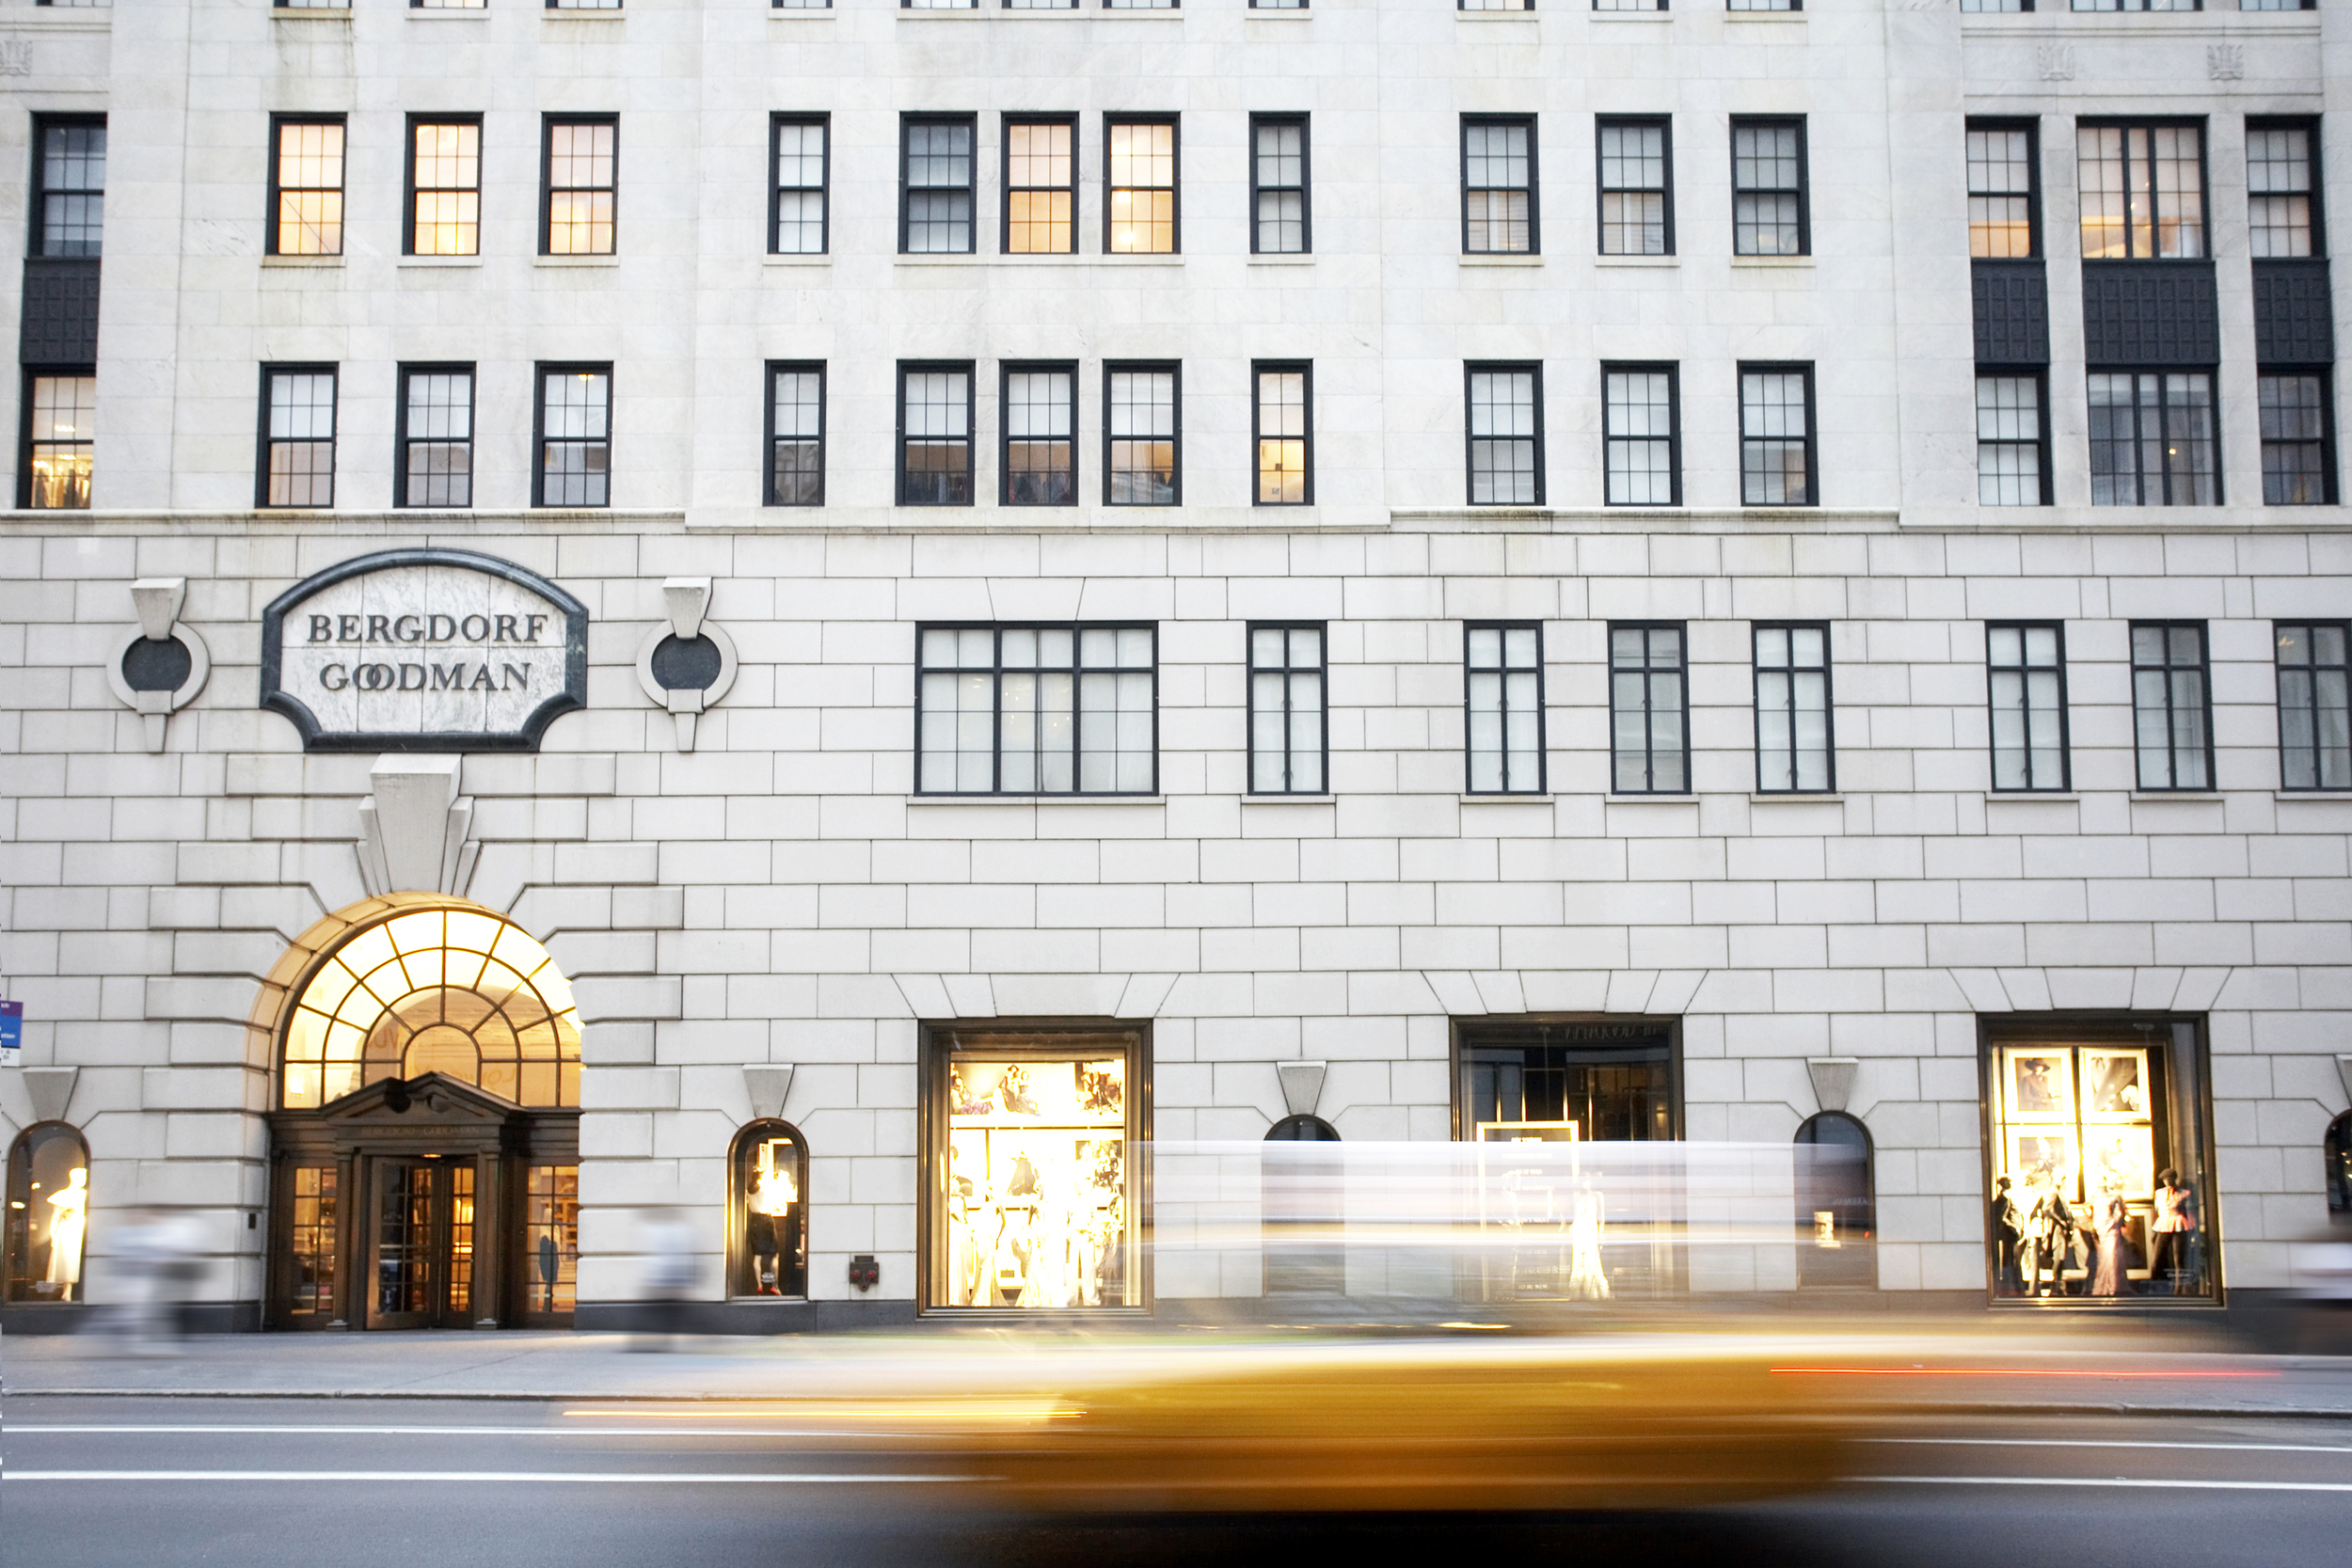 Luxury retailer Bergdorf Goodman